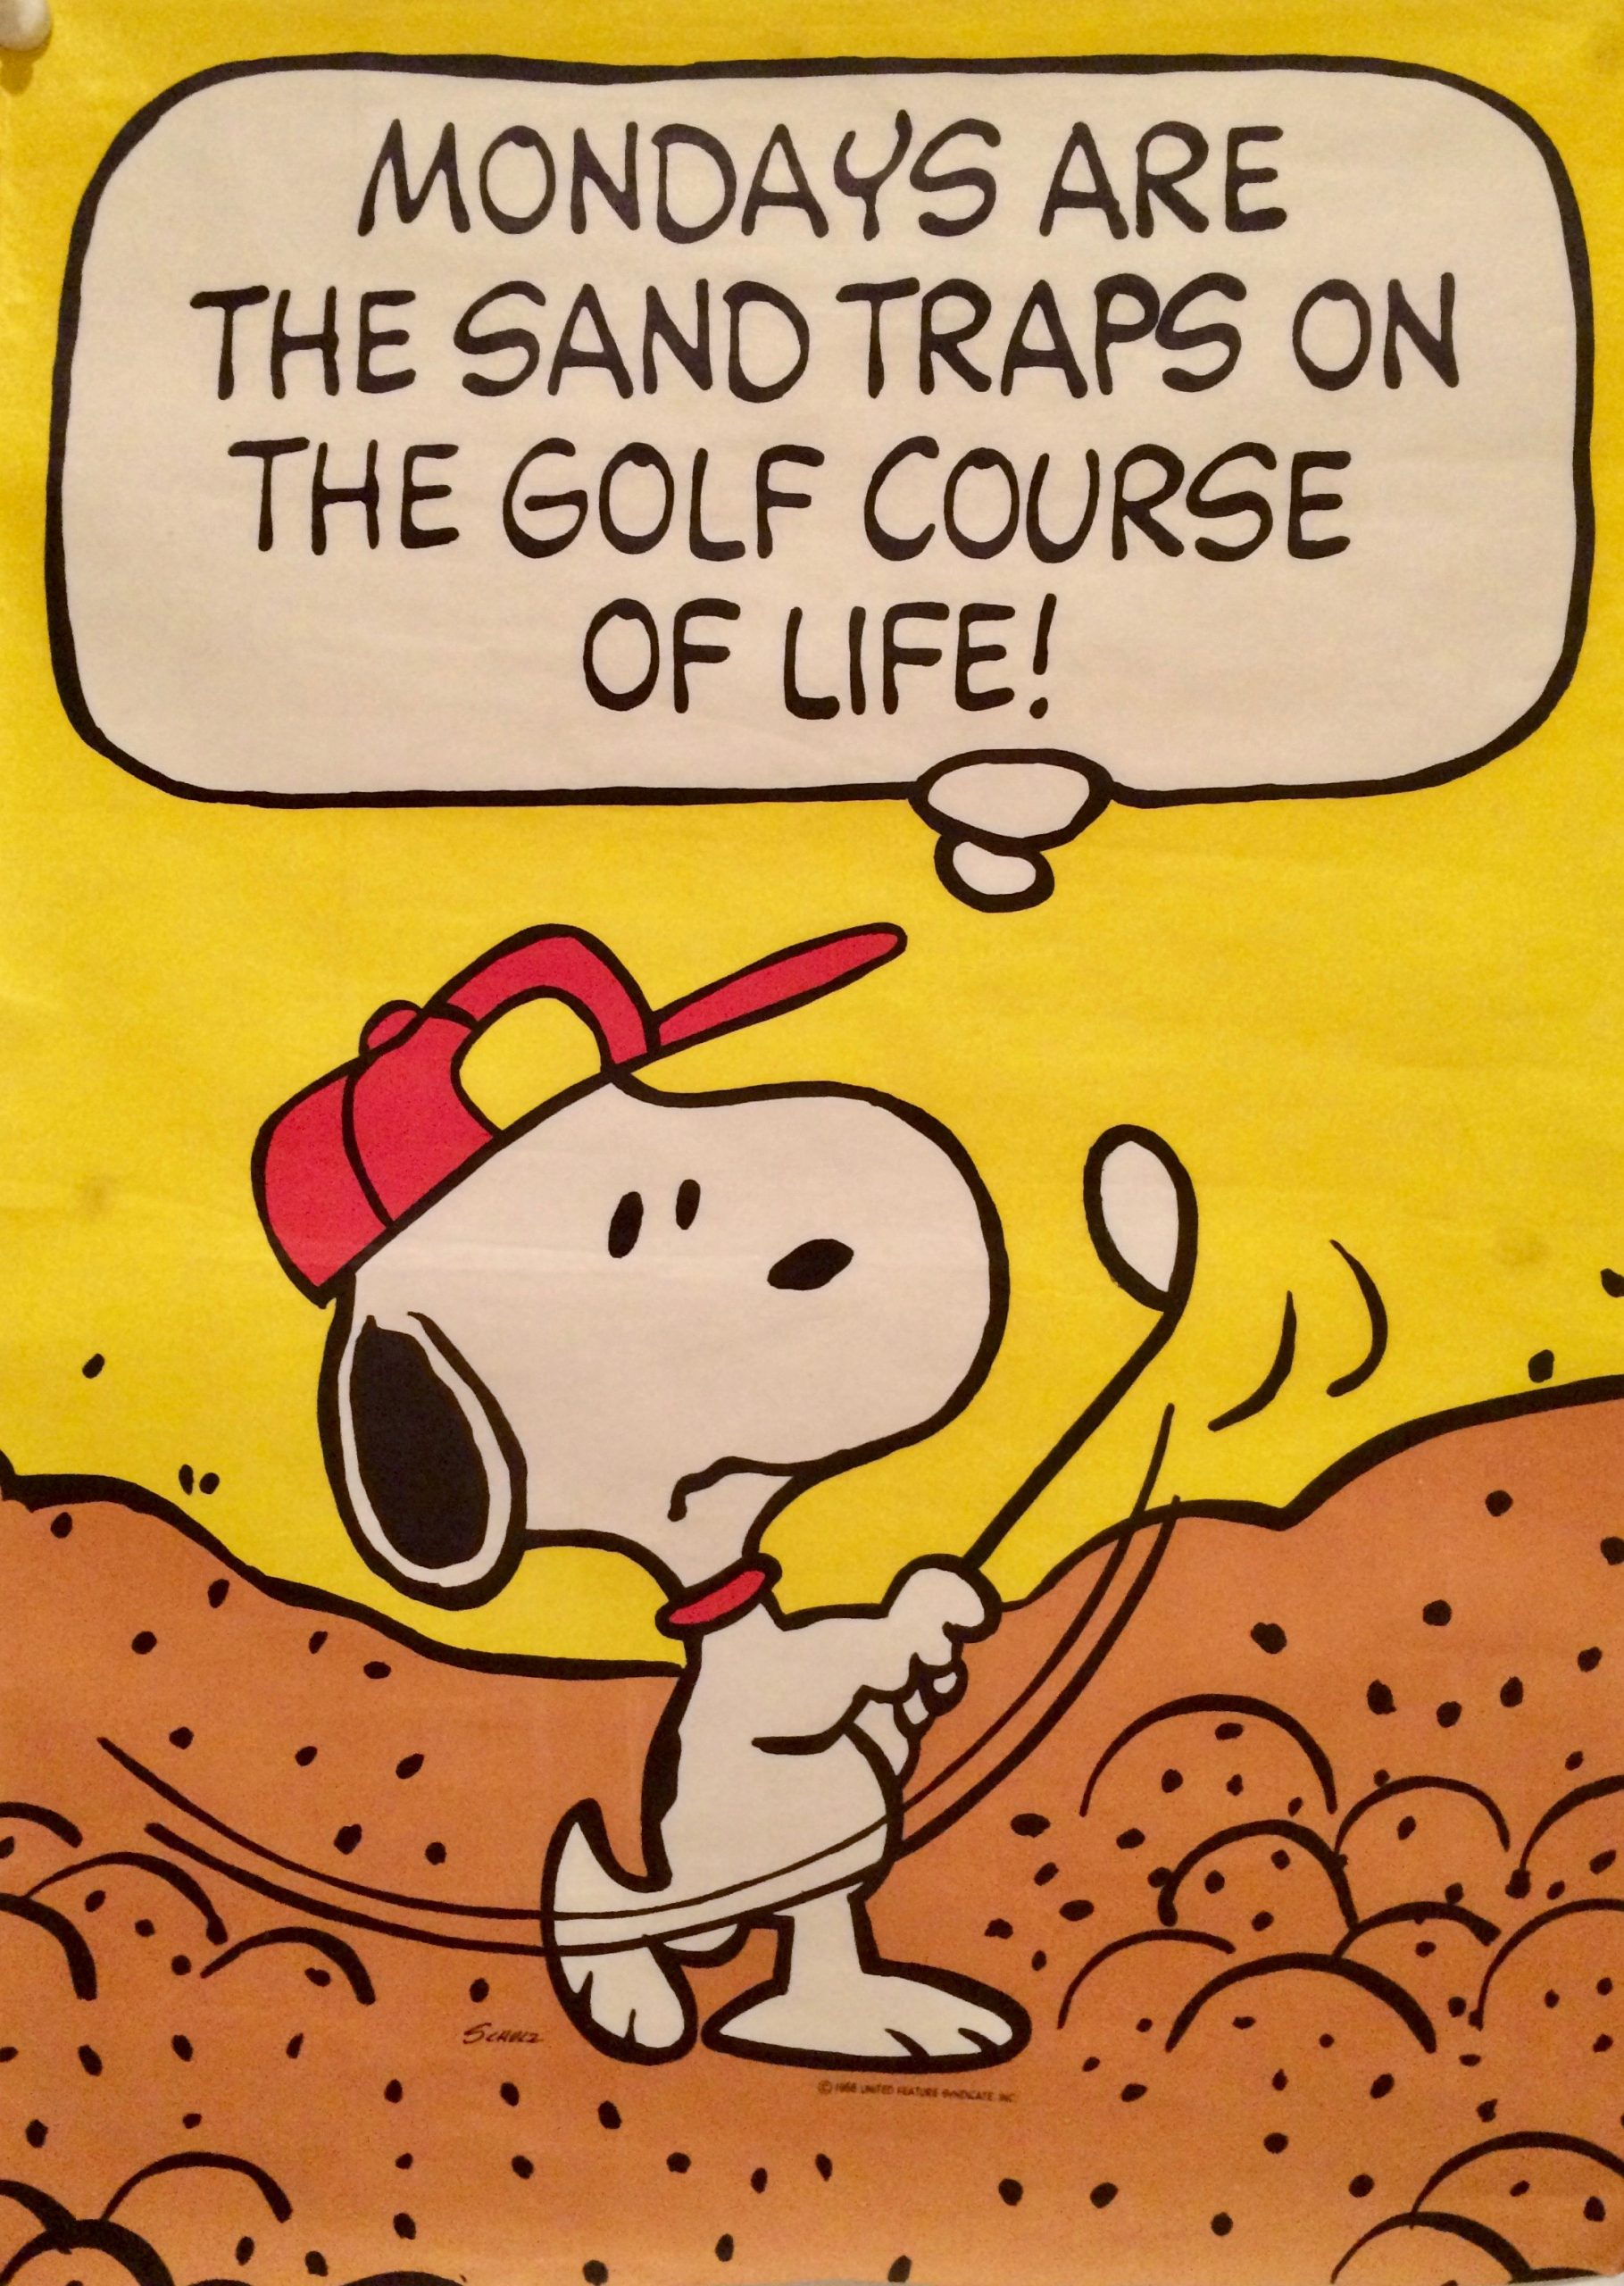 Snoopy paying golf, in a bunker